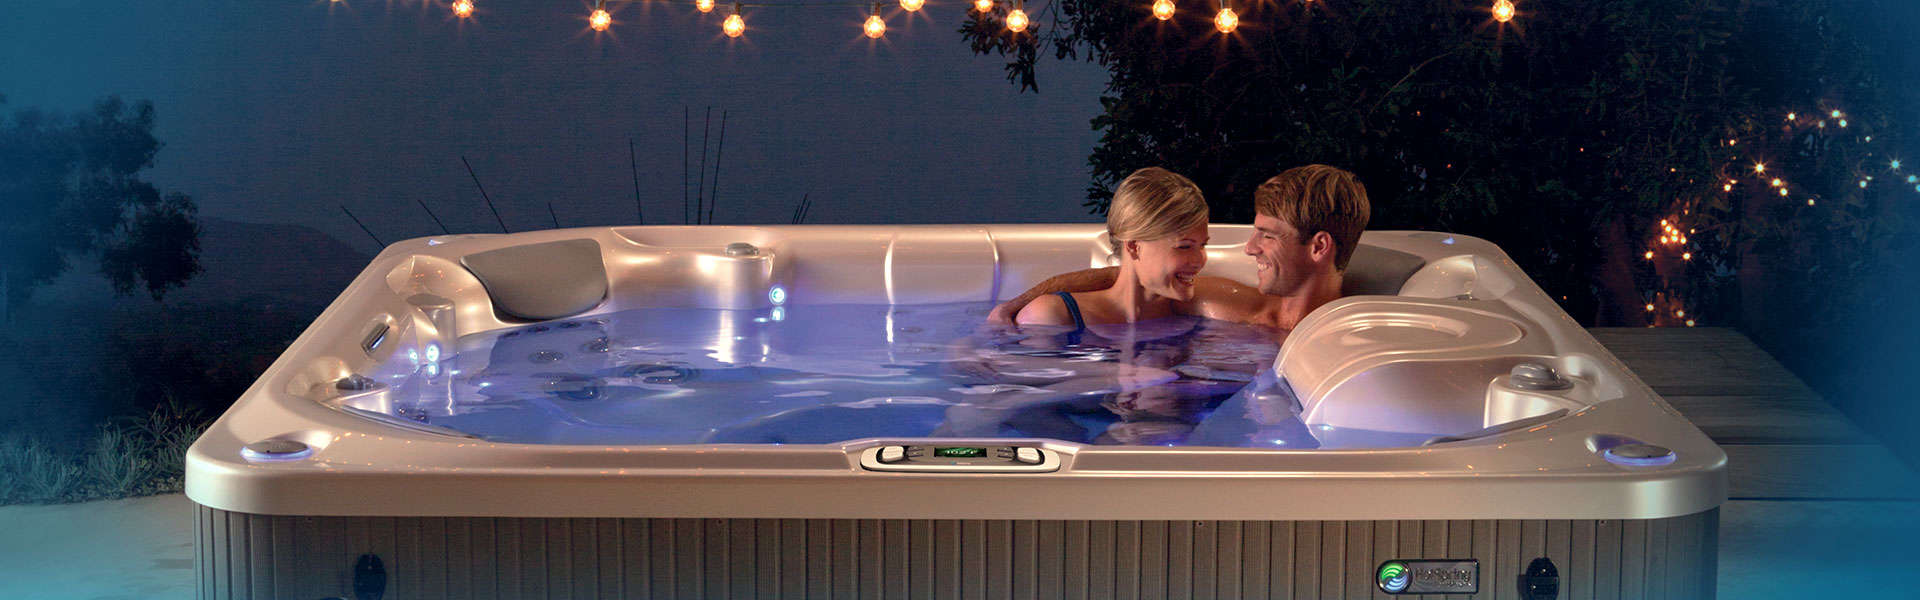 Best Inflatable Hot Tub 2018 – The Perfect Inflatable Hot Tub Buying Guide